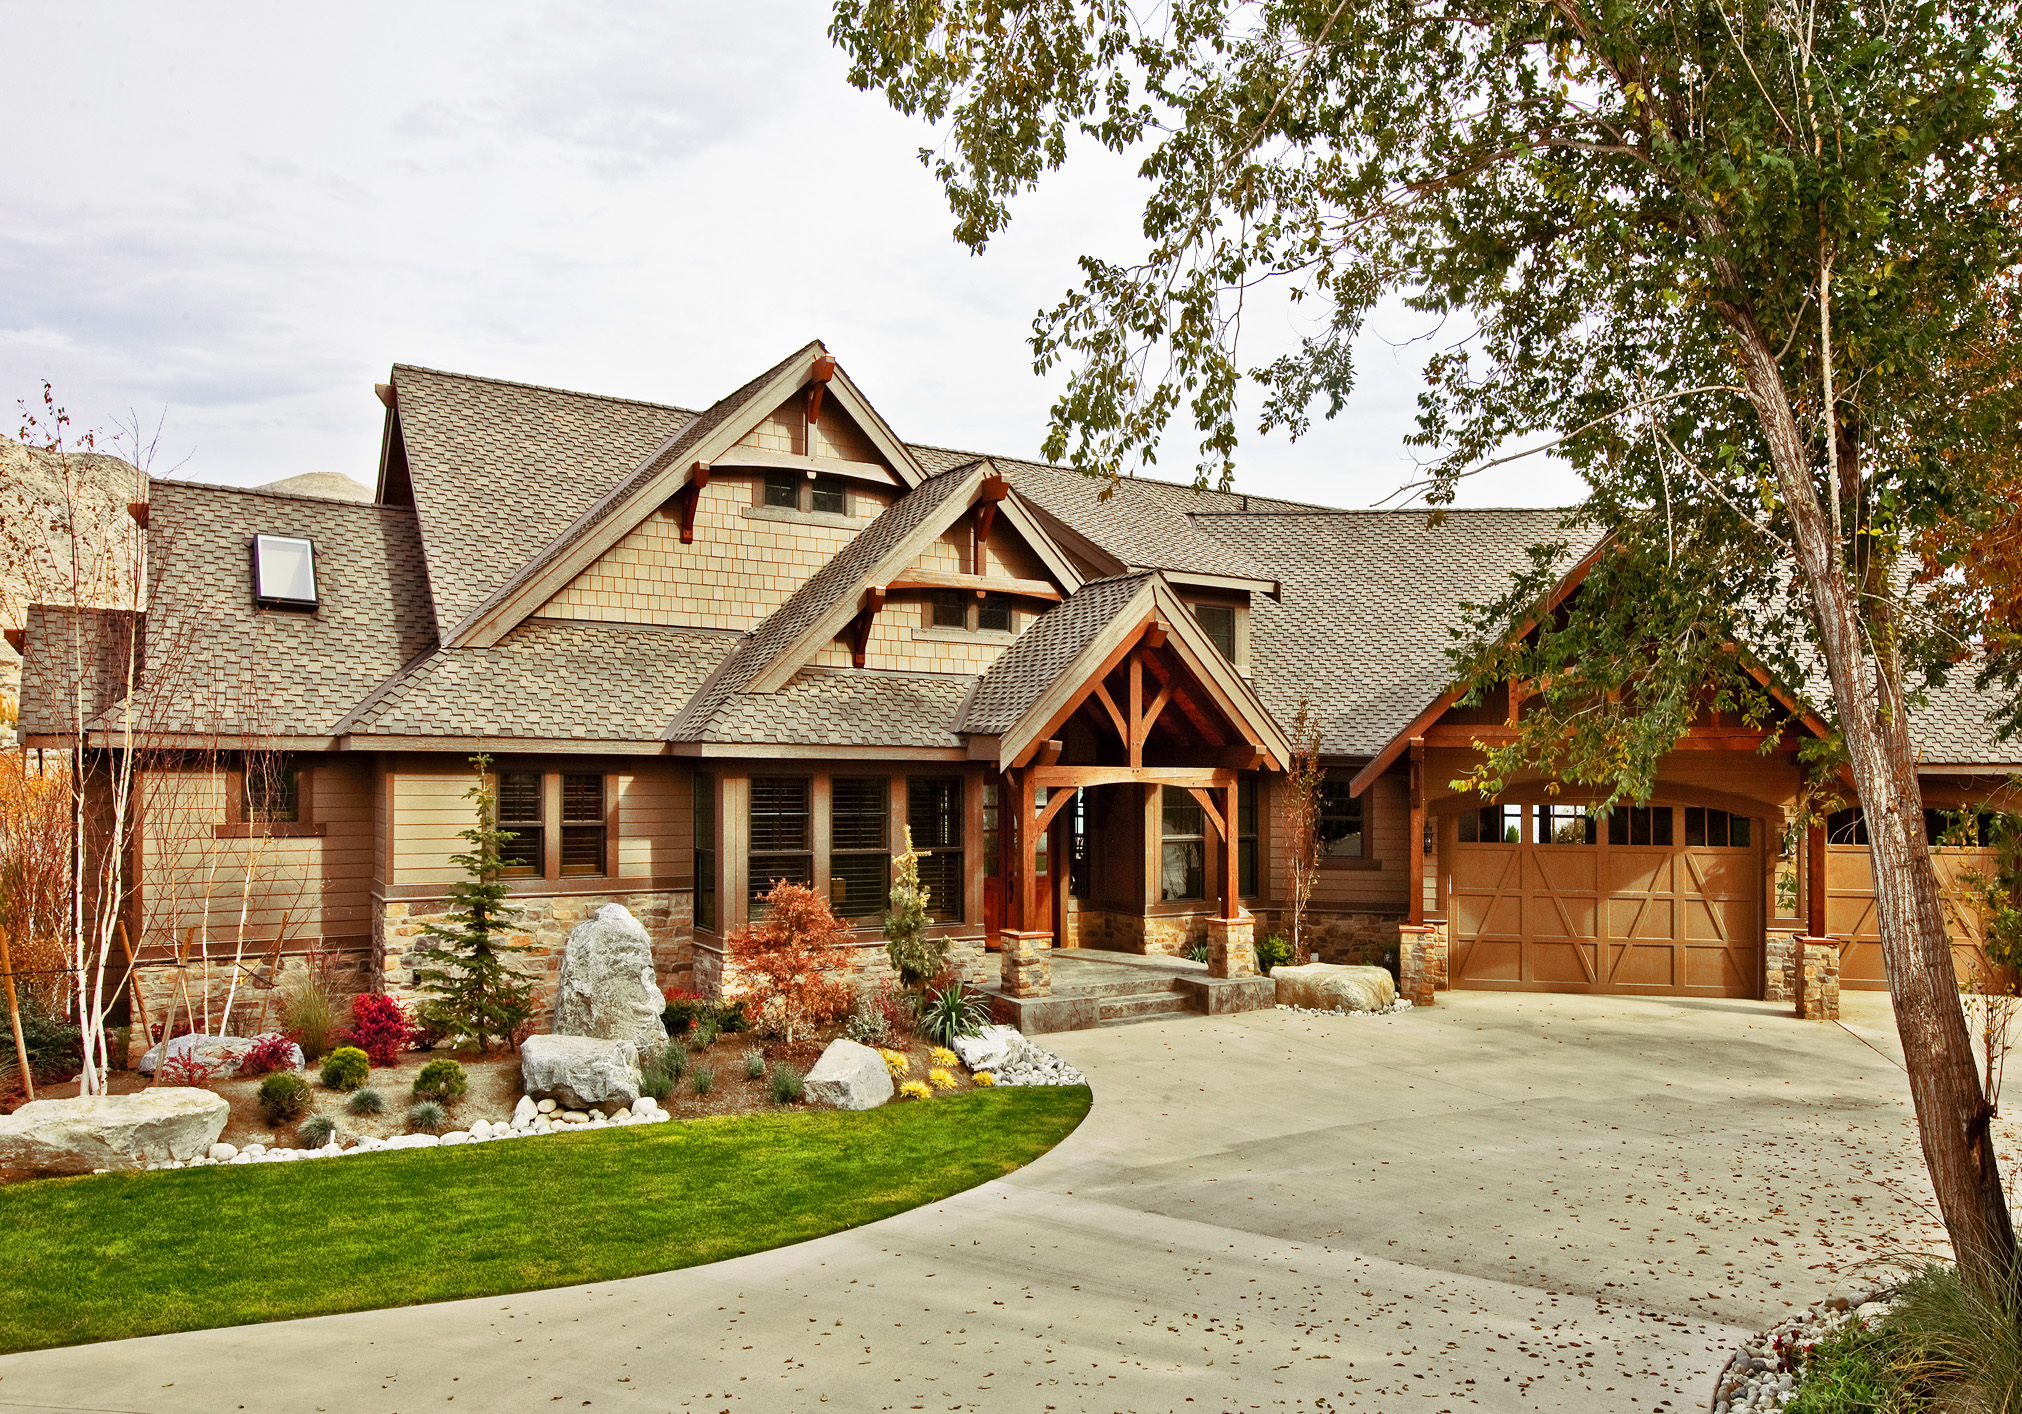 Architectural Home Plans Luxury: Luxury Craftsman With Bonus Room - 23283JD